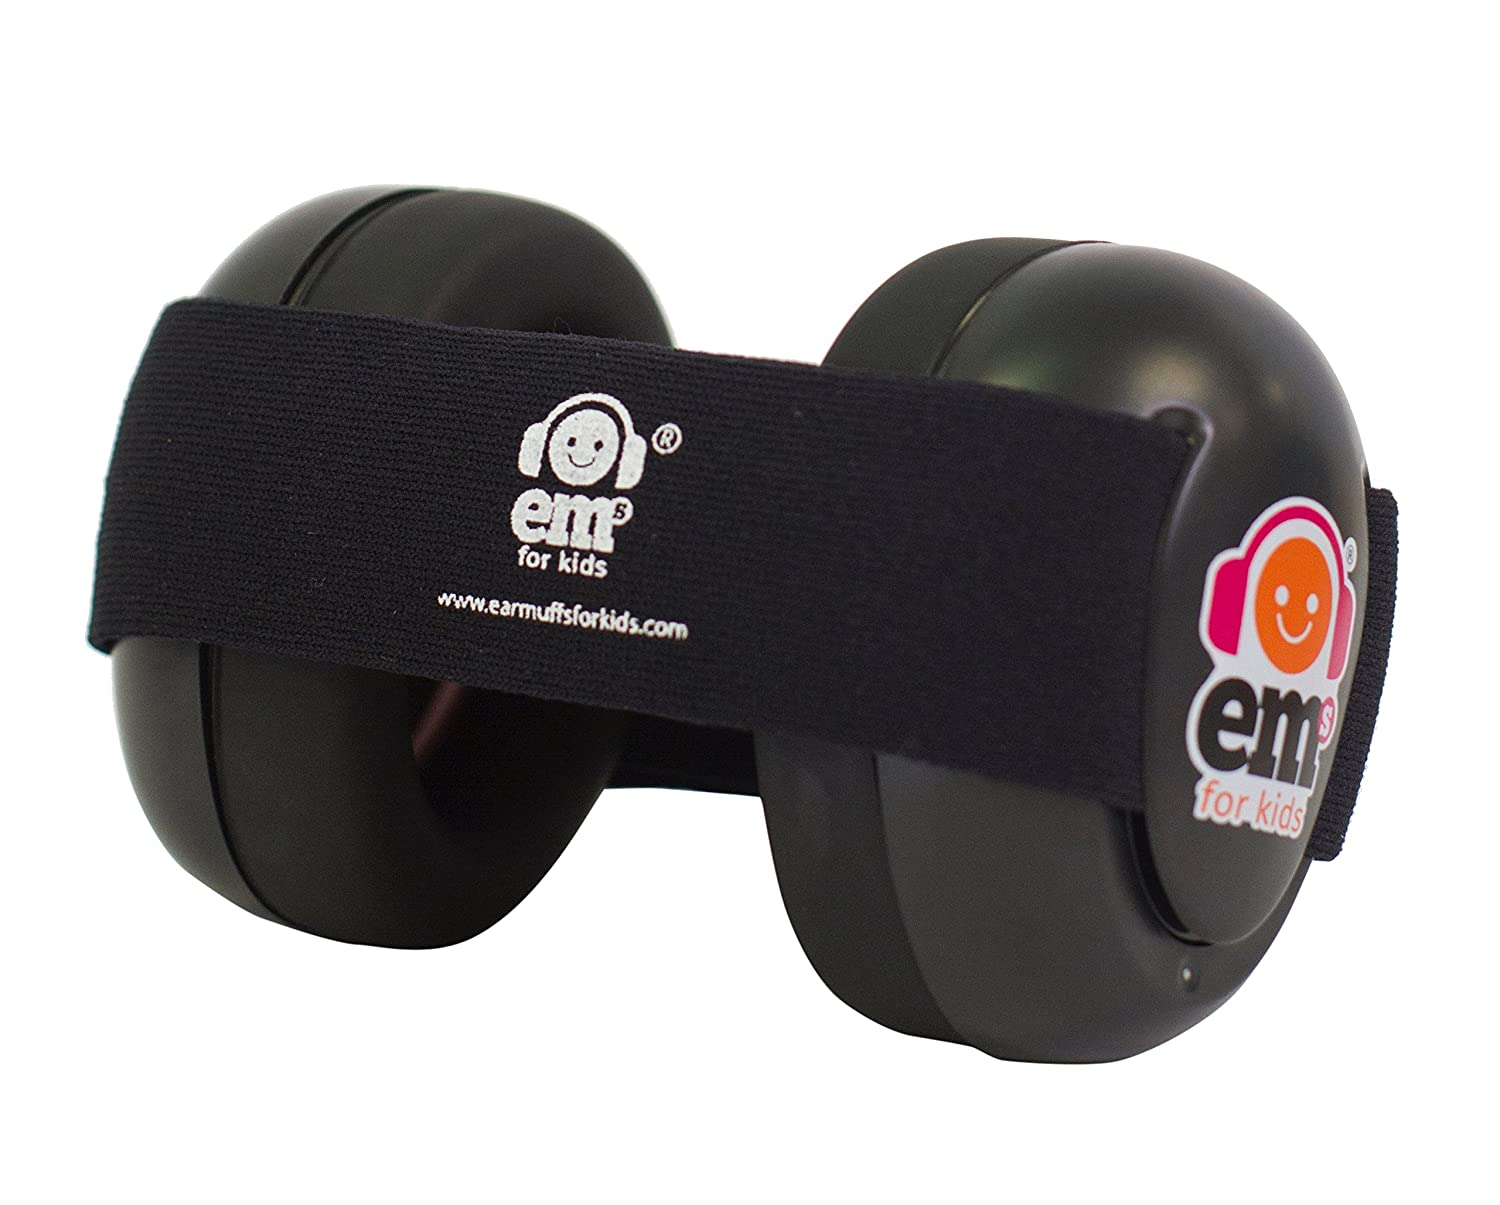 EMS for Kids Baby Earmuffs - Black with Black. The Original Baby Earmuffs, Now Made in The USA! Great for Concerts, Music Festivals, Planes, NASCAR, Motor Racing, Power Tools and More!